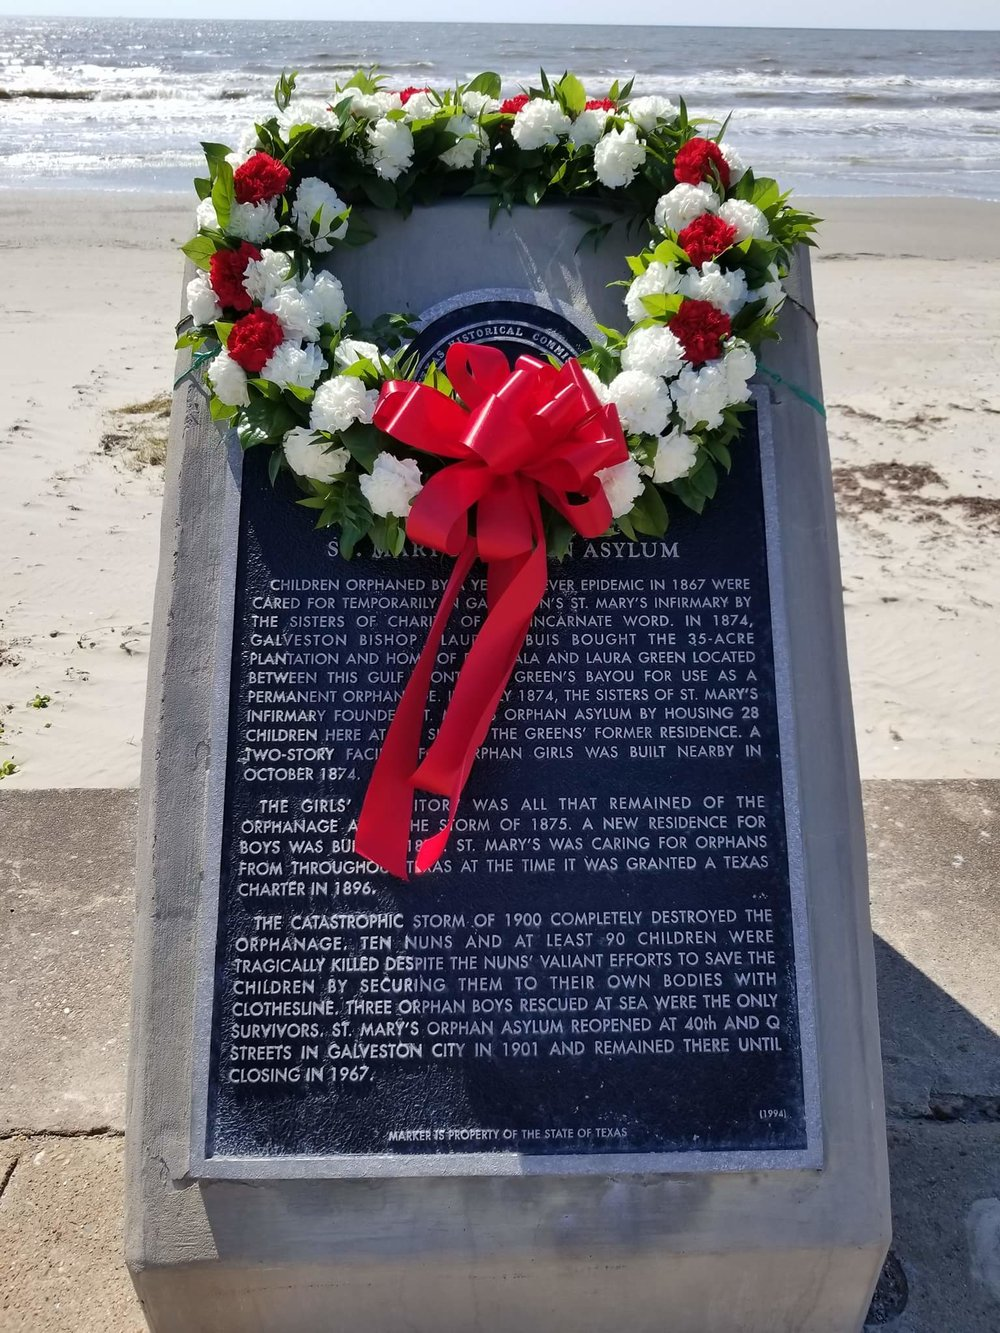 Photo courtesy of Melissa Hall.  This historical marker remembers the nuns and orphans lost in the Great Storm of 1900.  On the anniversary of the storm every year a wreath is placed on the marker to remember the lives lost.